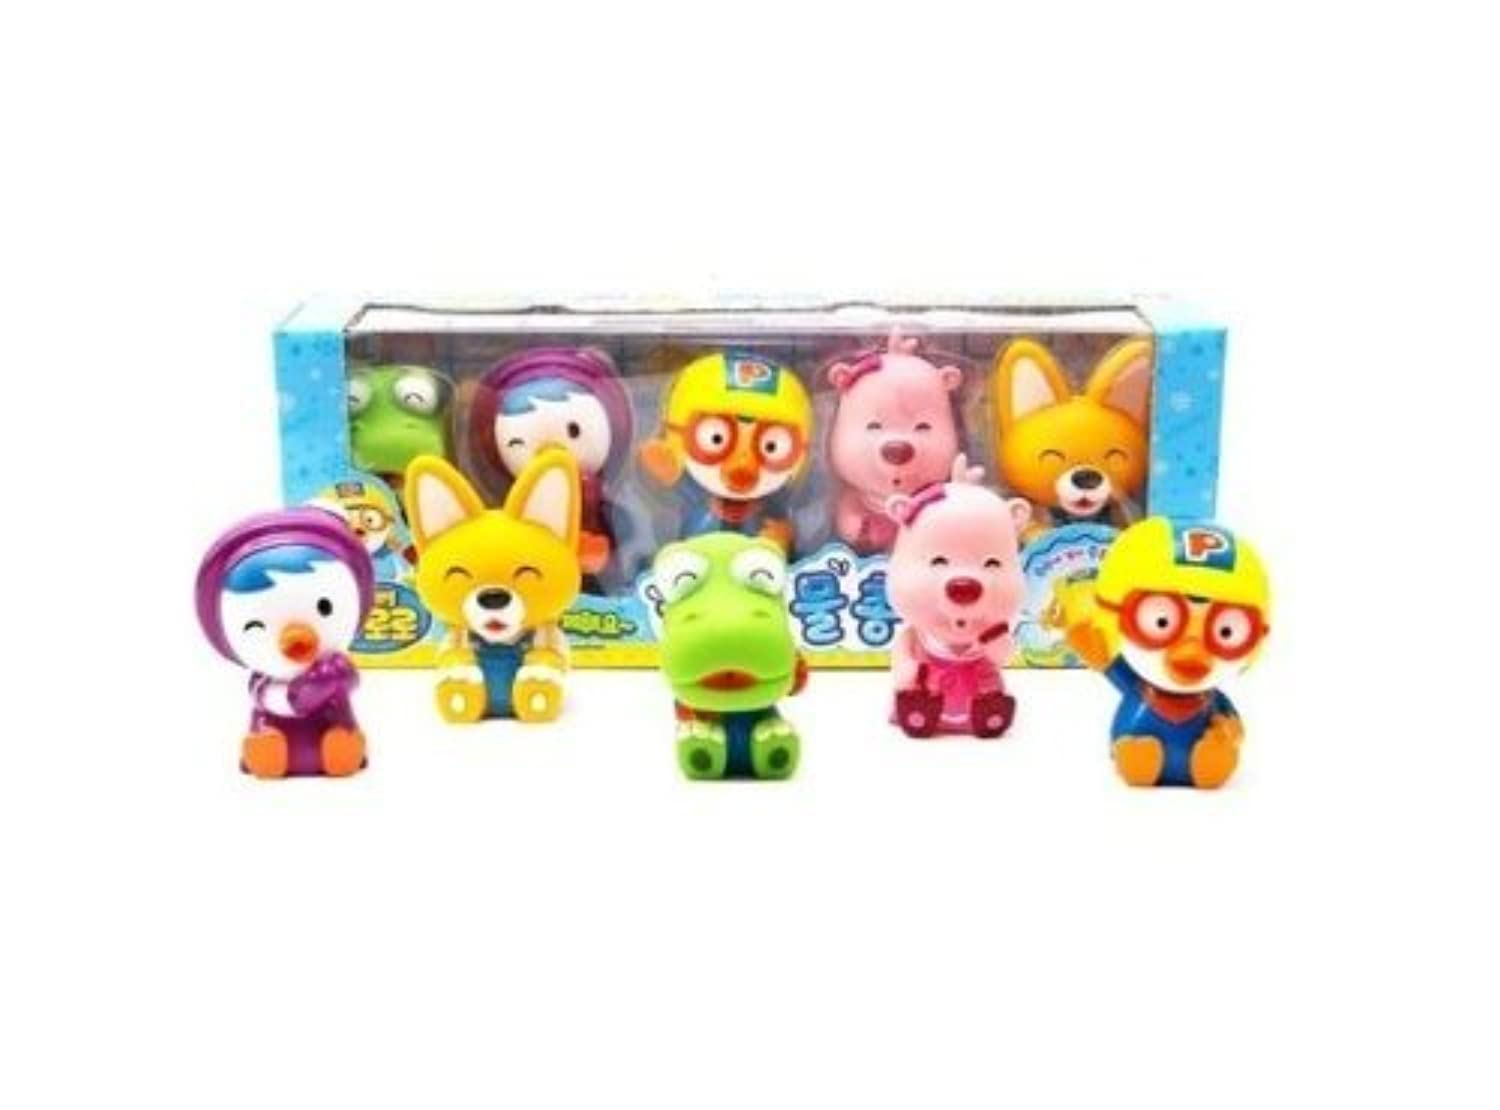 Pororo & Friends Bath Toy by Pororo [並行輸入品]